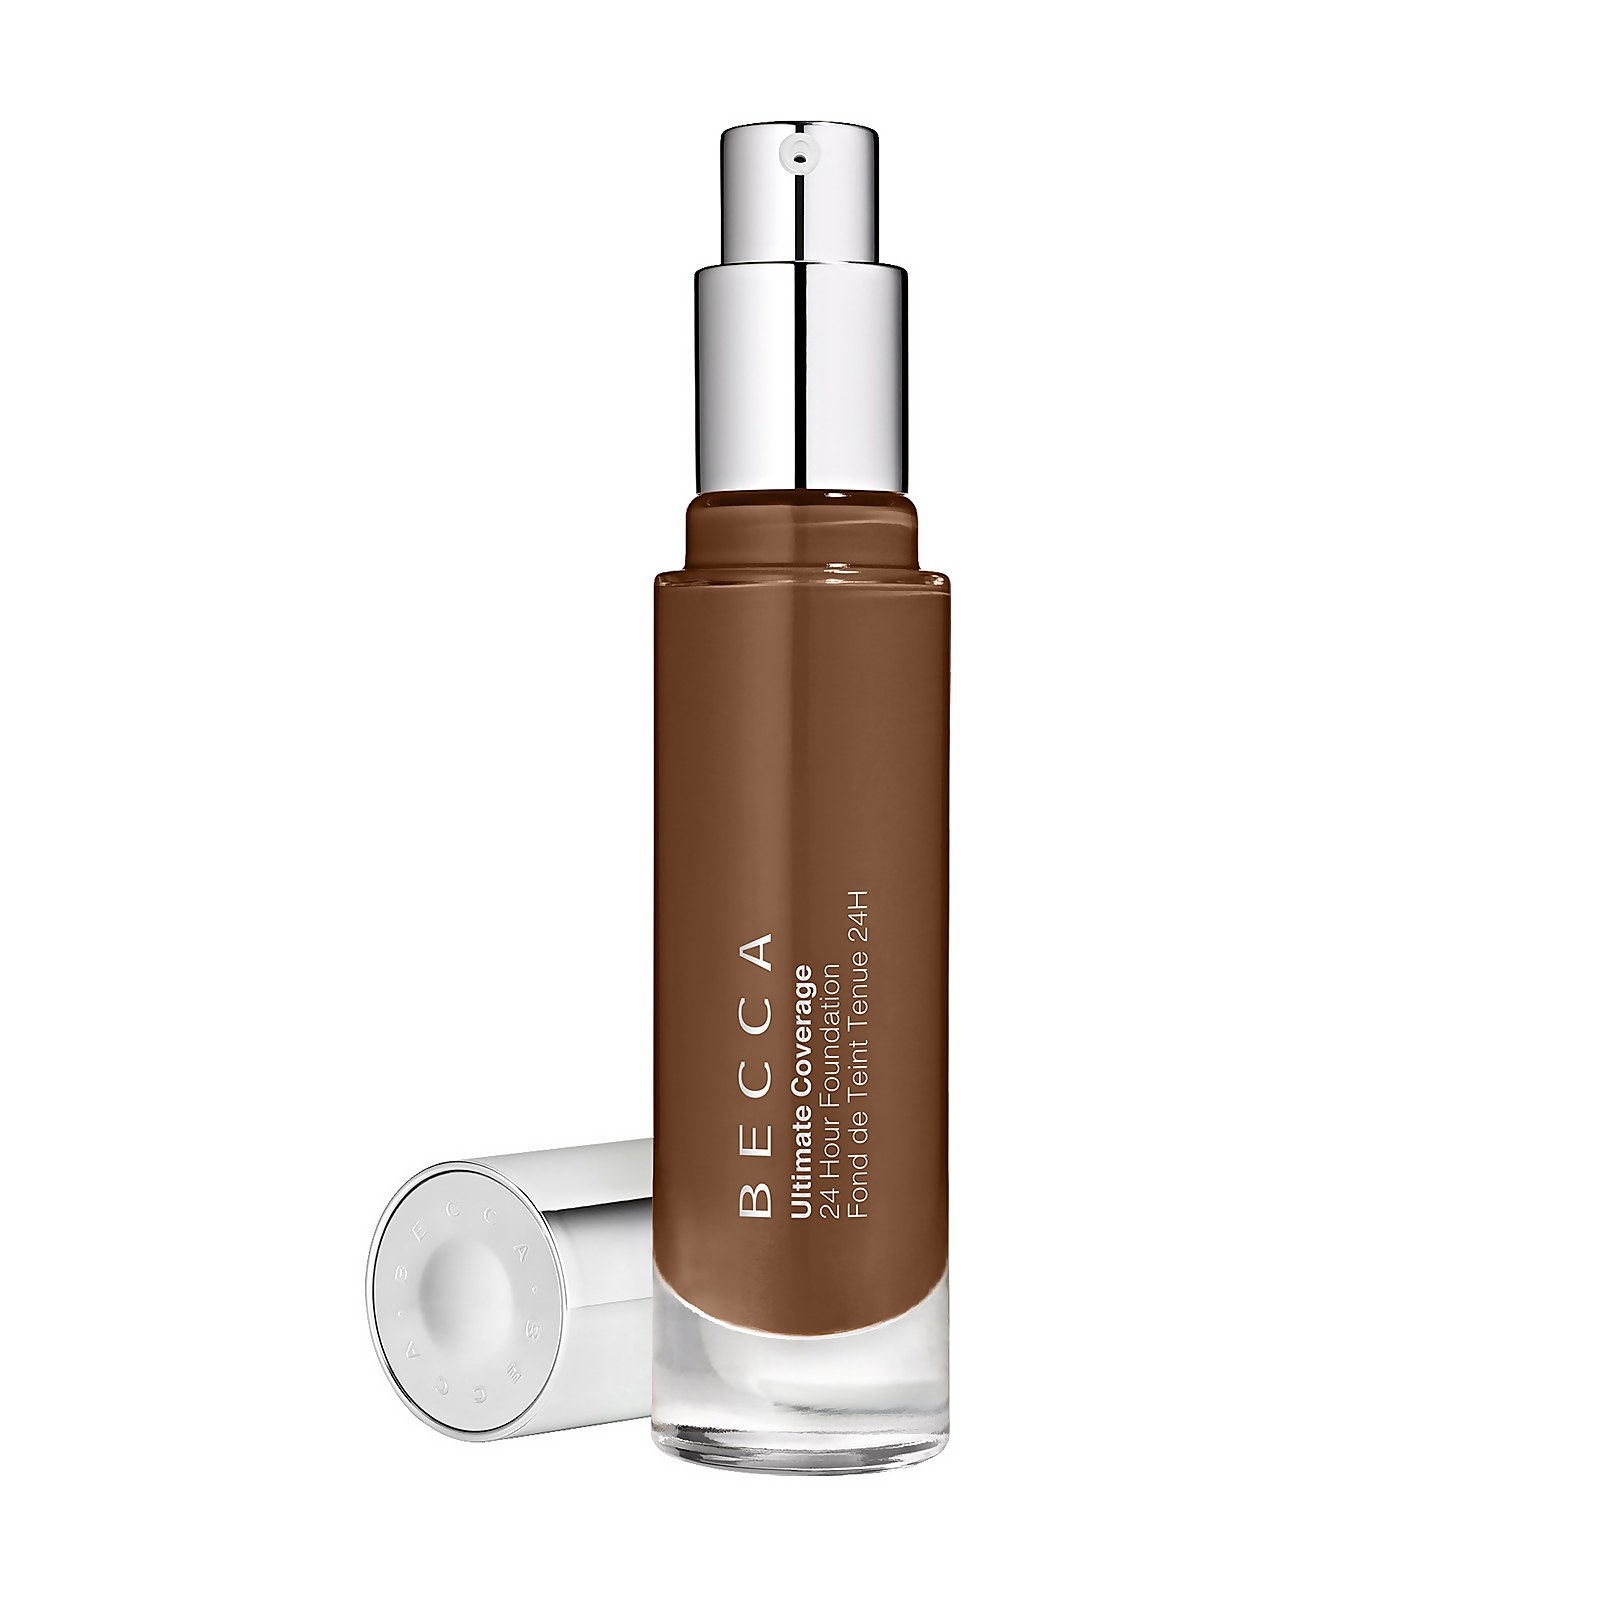 BECCA Ultimate Coverage 24 Hour Foundation 30ml (Various Shades) - Clove